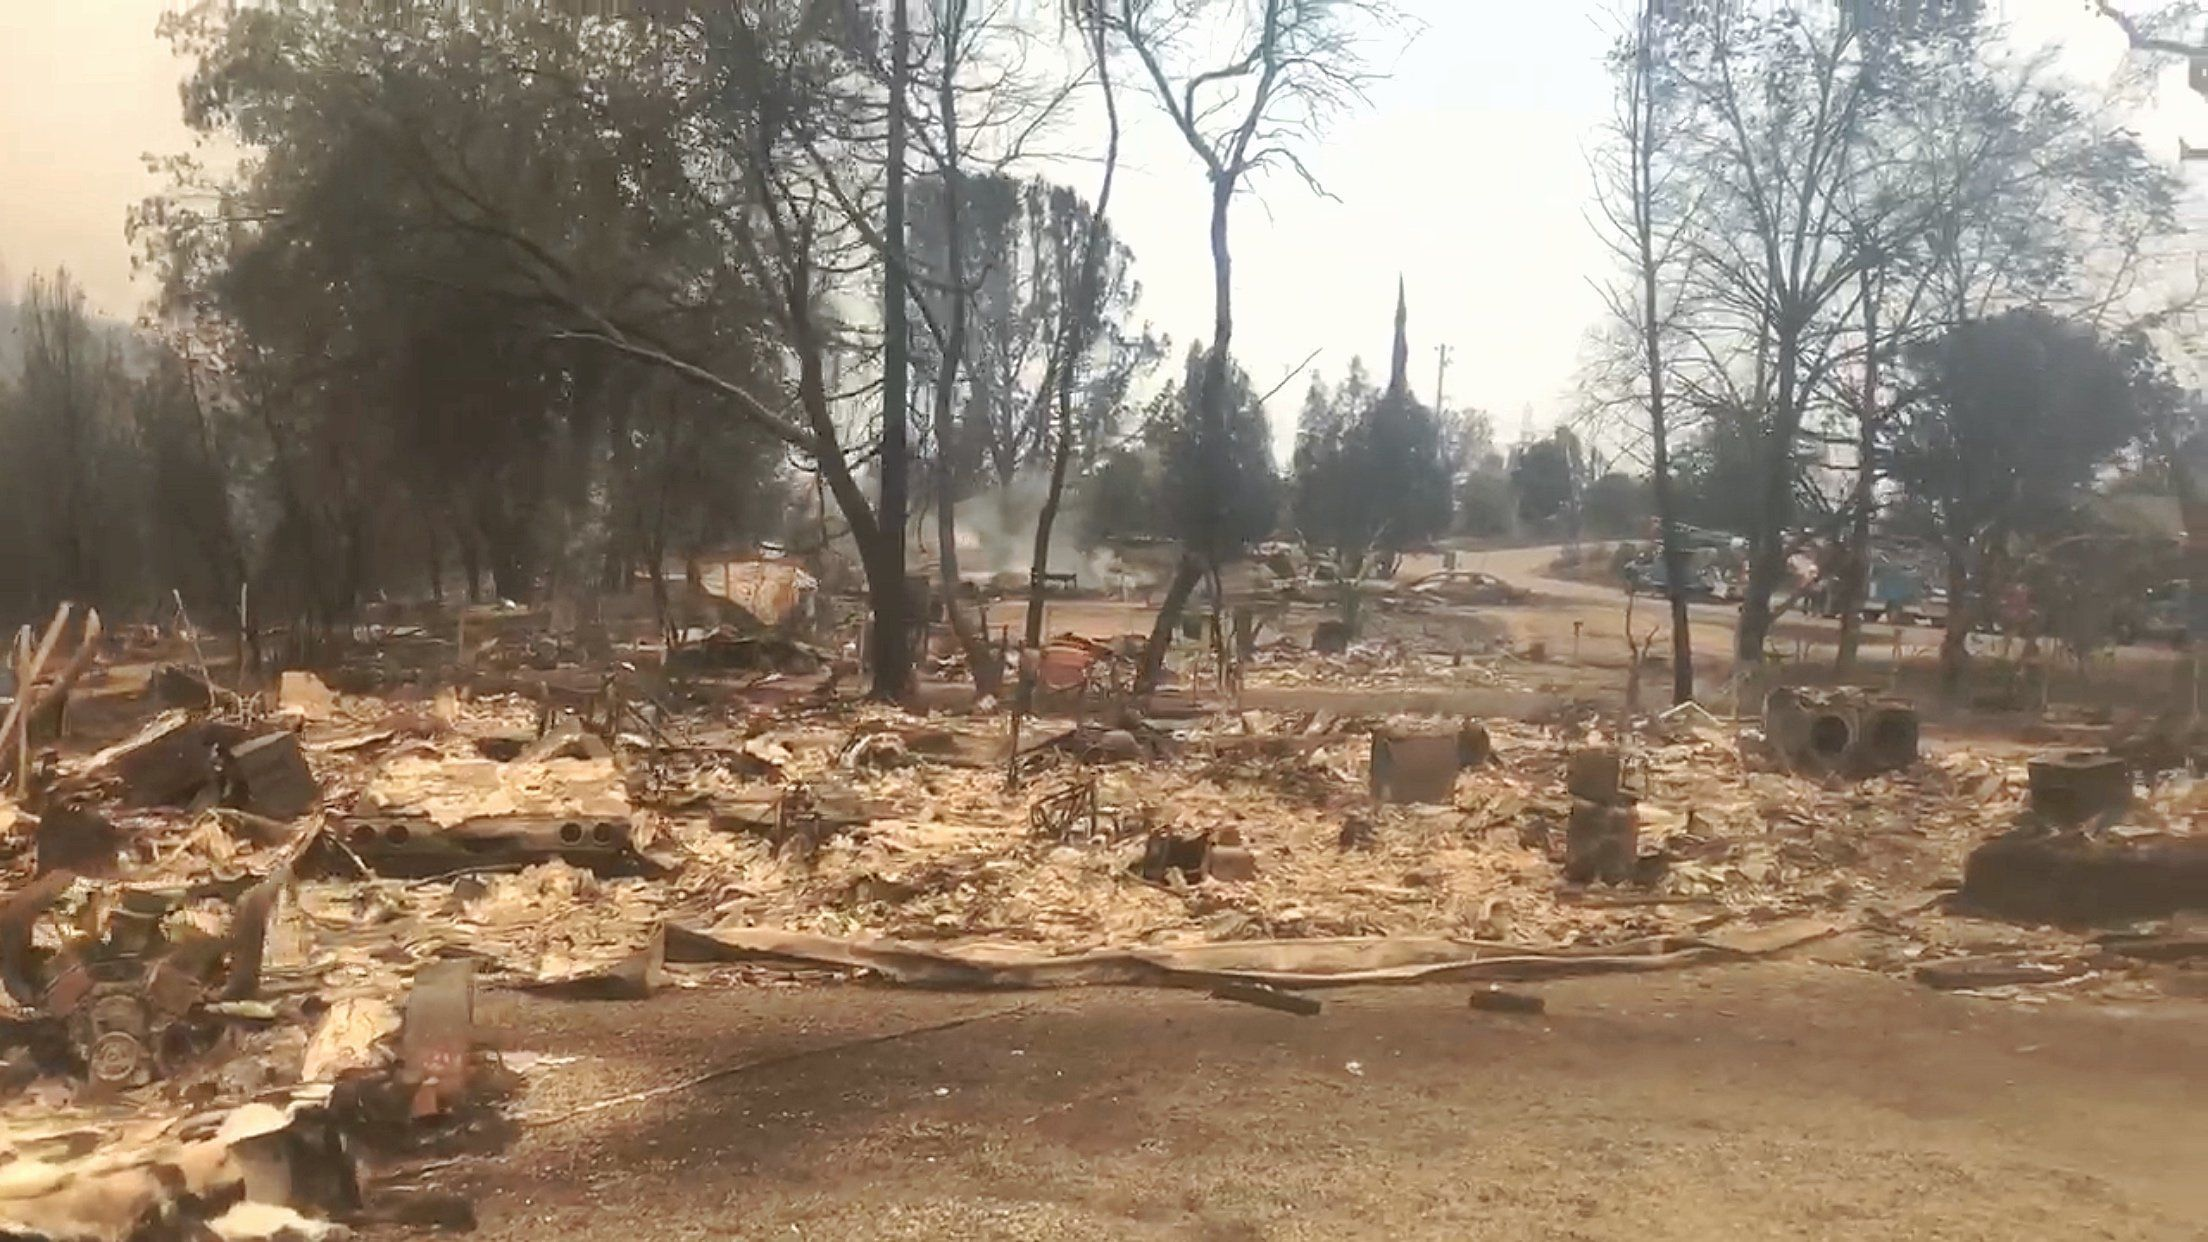 The Campbells' property after the Carr fire hit, near Redding, California, on July 27, 2018.